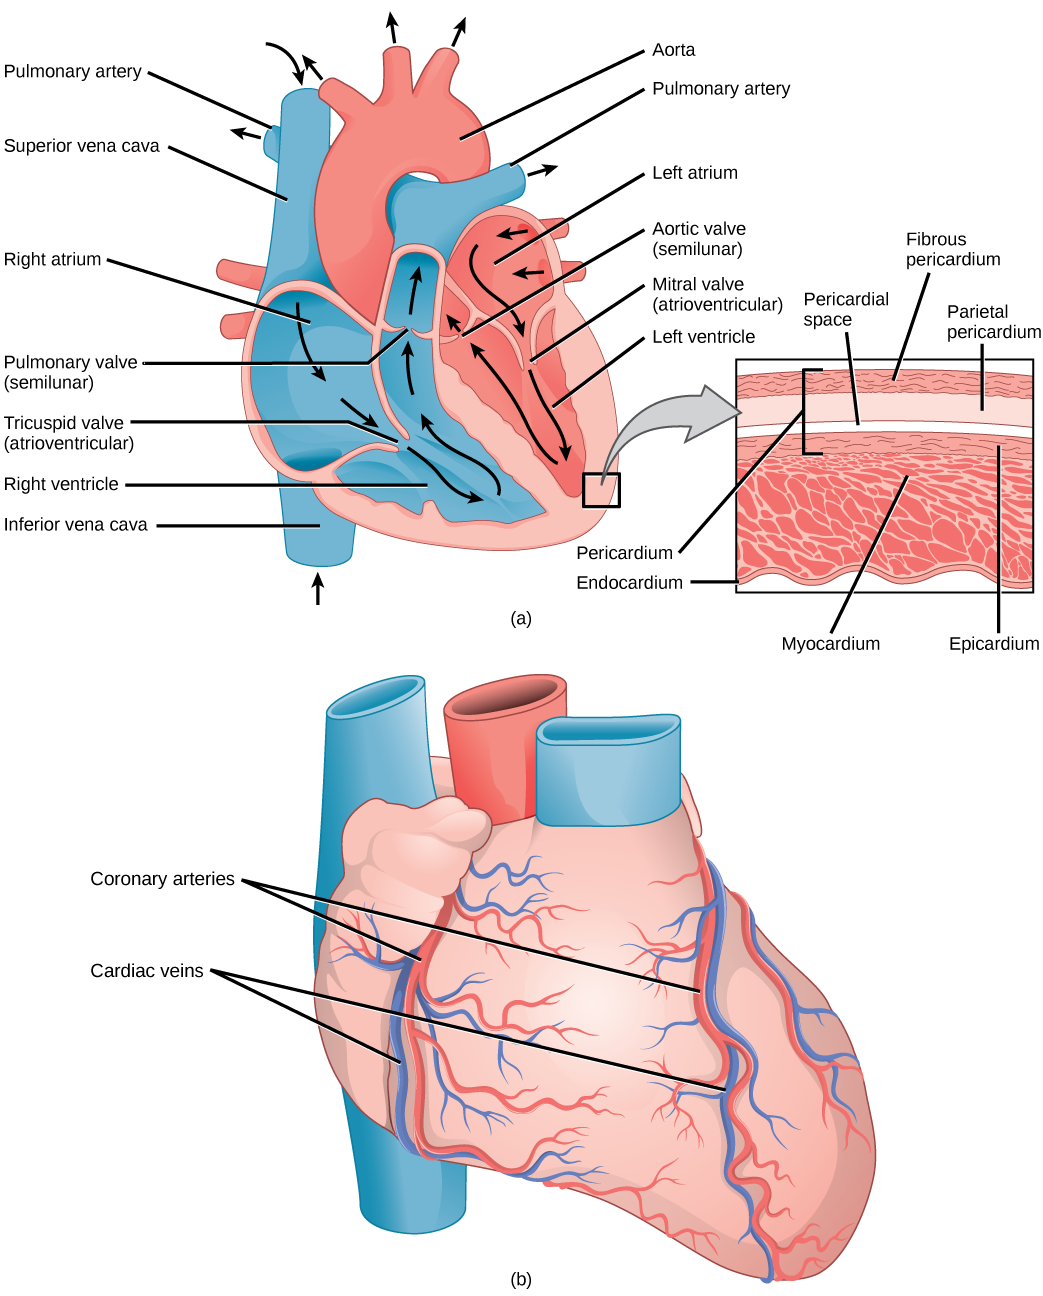 Illustration A shows the parts of the heart. Blood enters the right atrium through an upper, superior vena cava and a lower, inferior vena cava. From the right atrium, blood flows through the funnel-shaped tricuspid valve into the right ventricle. Blood then travels up and through the pulmonary valve into the pulmonary artery. Blood re-enters the heart through the pulmonary veins, and travels down from the left atrium, through the mitral valve, into the right ventricle. Blood then travels up through the aortic valve, into the aorta. The tricuspid and mitral valves are atrioventricular and funnel-shaped. The pulmonary and aortic valves are semilunar and slightly curved. An inset shows a cross section of the heart. The myocardium is the thick muscle layer. The inside of the heart is protected by the endocardium, and the outside is protected by the pericardium. Illustration B shows the outside of the heart. Coronary arteries and coronary veins run from the top down along the right and left sides.